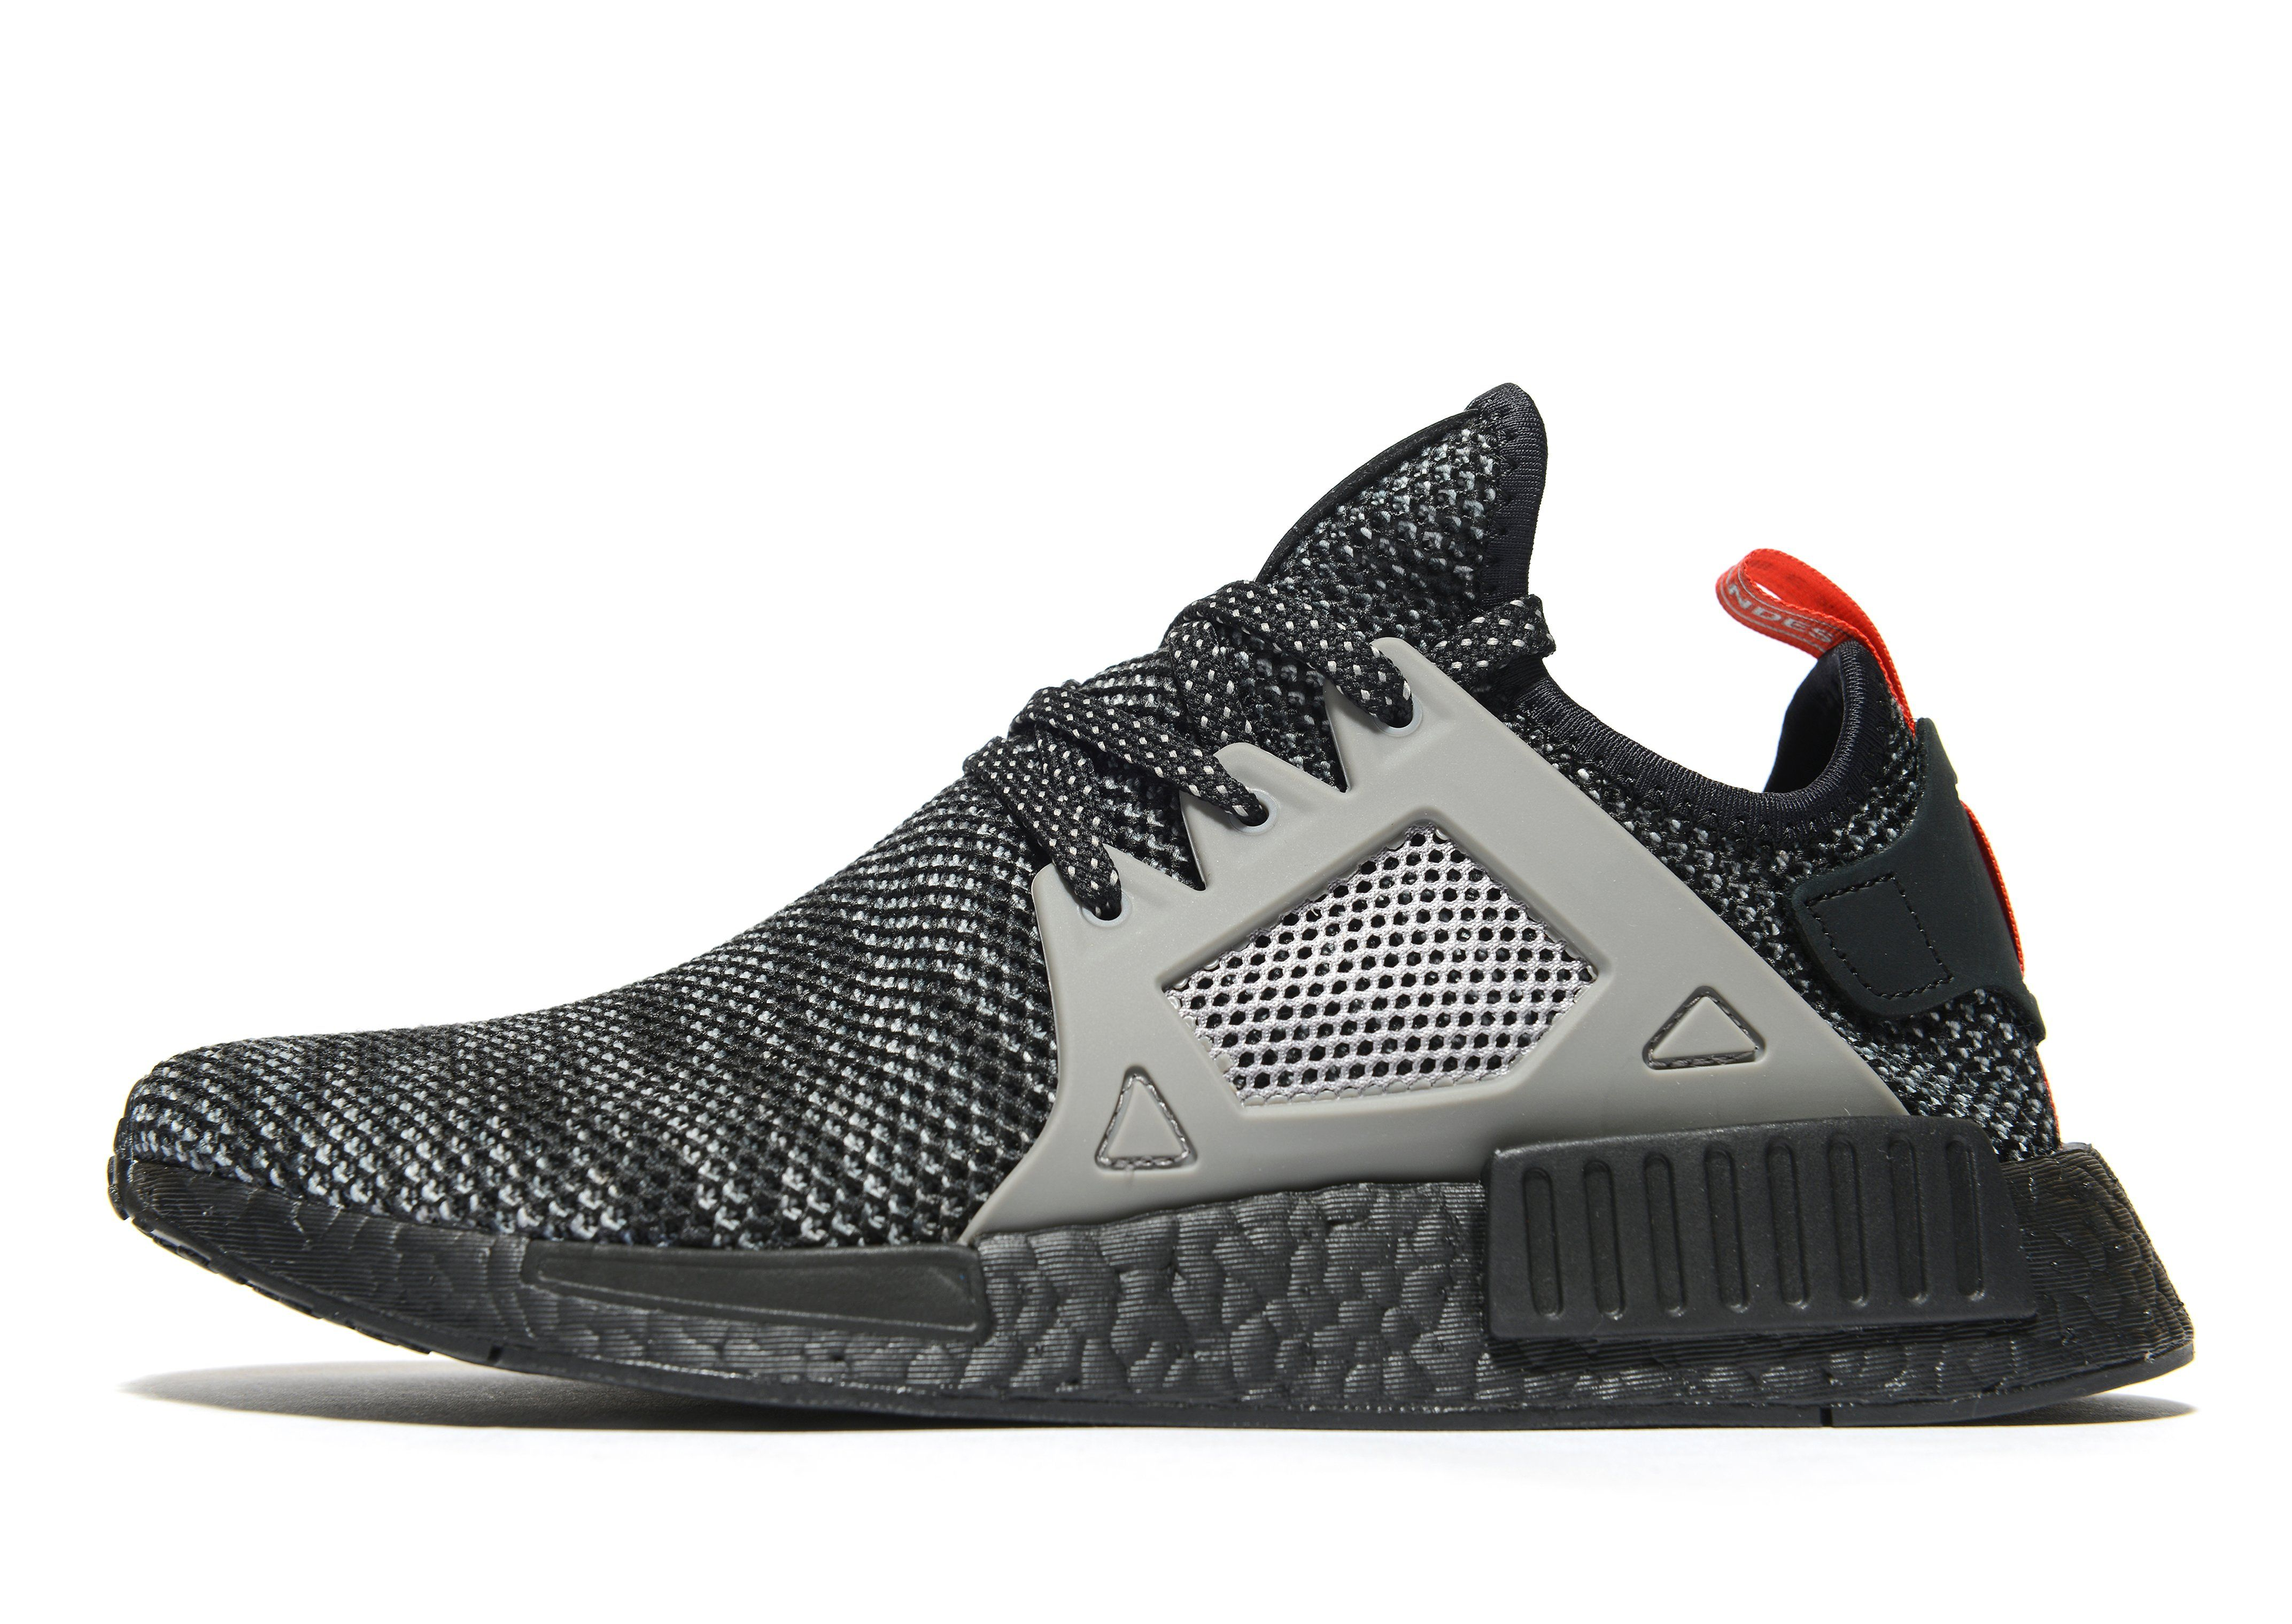 Adidas Originals NMD XR1 bWQtCB6